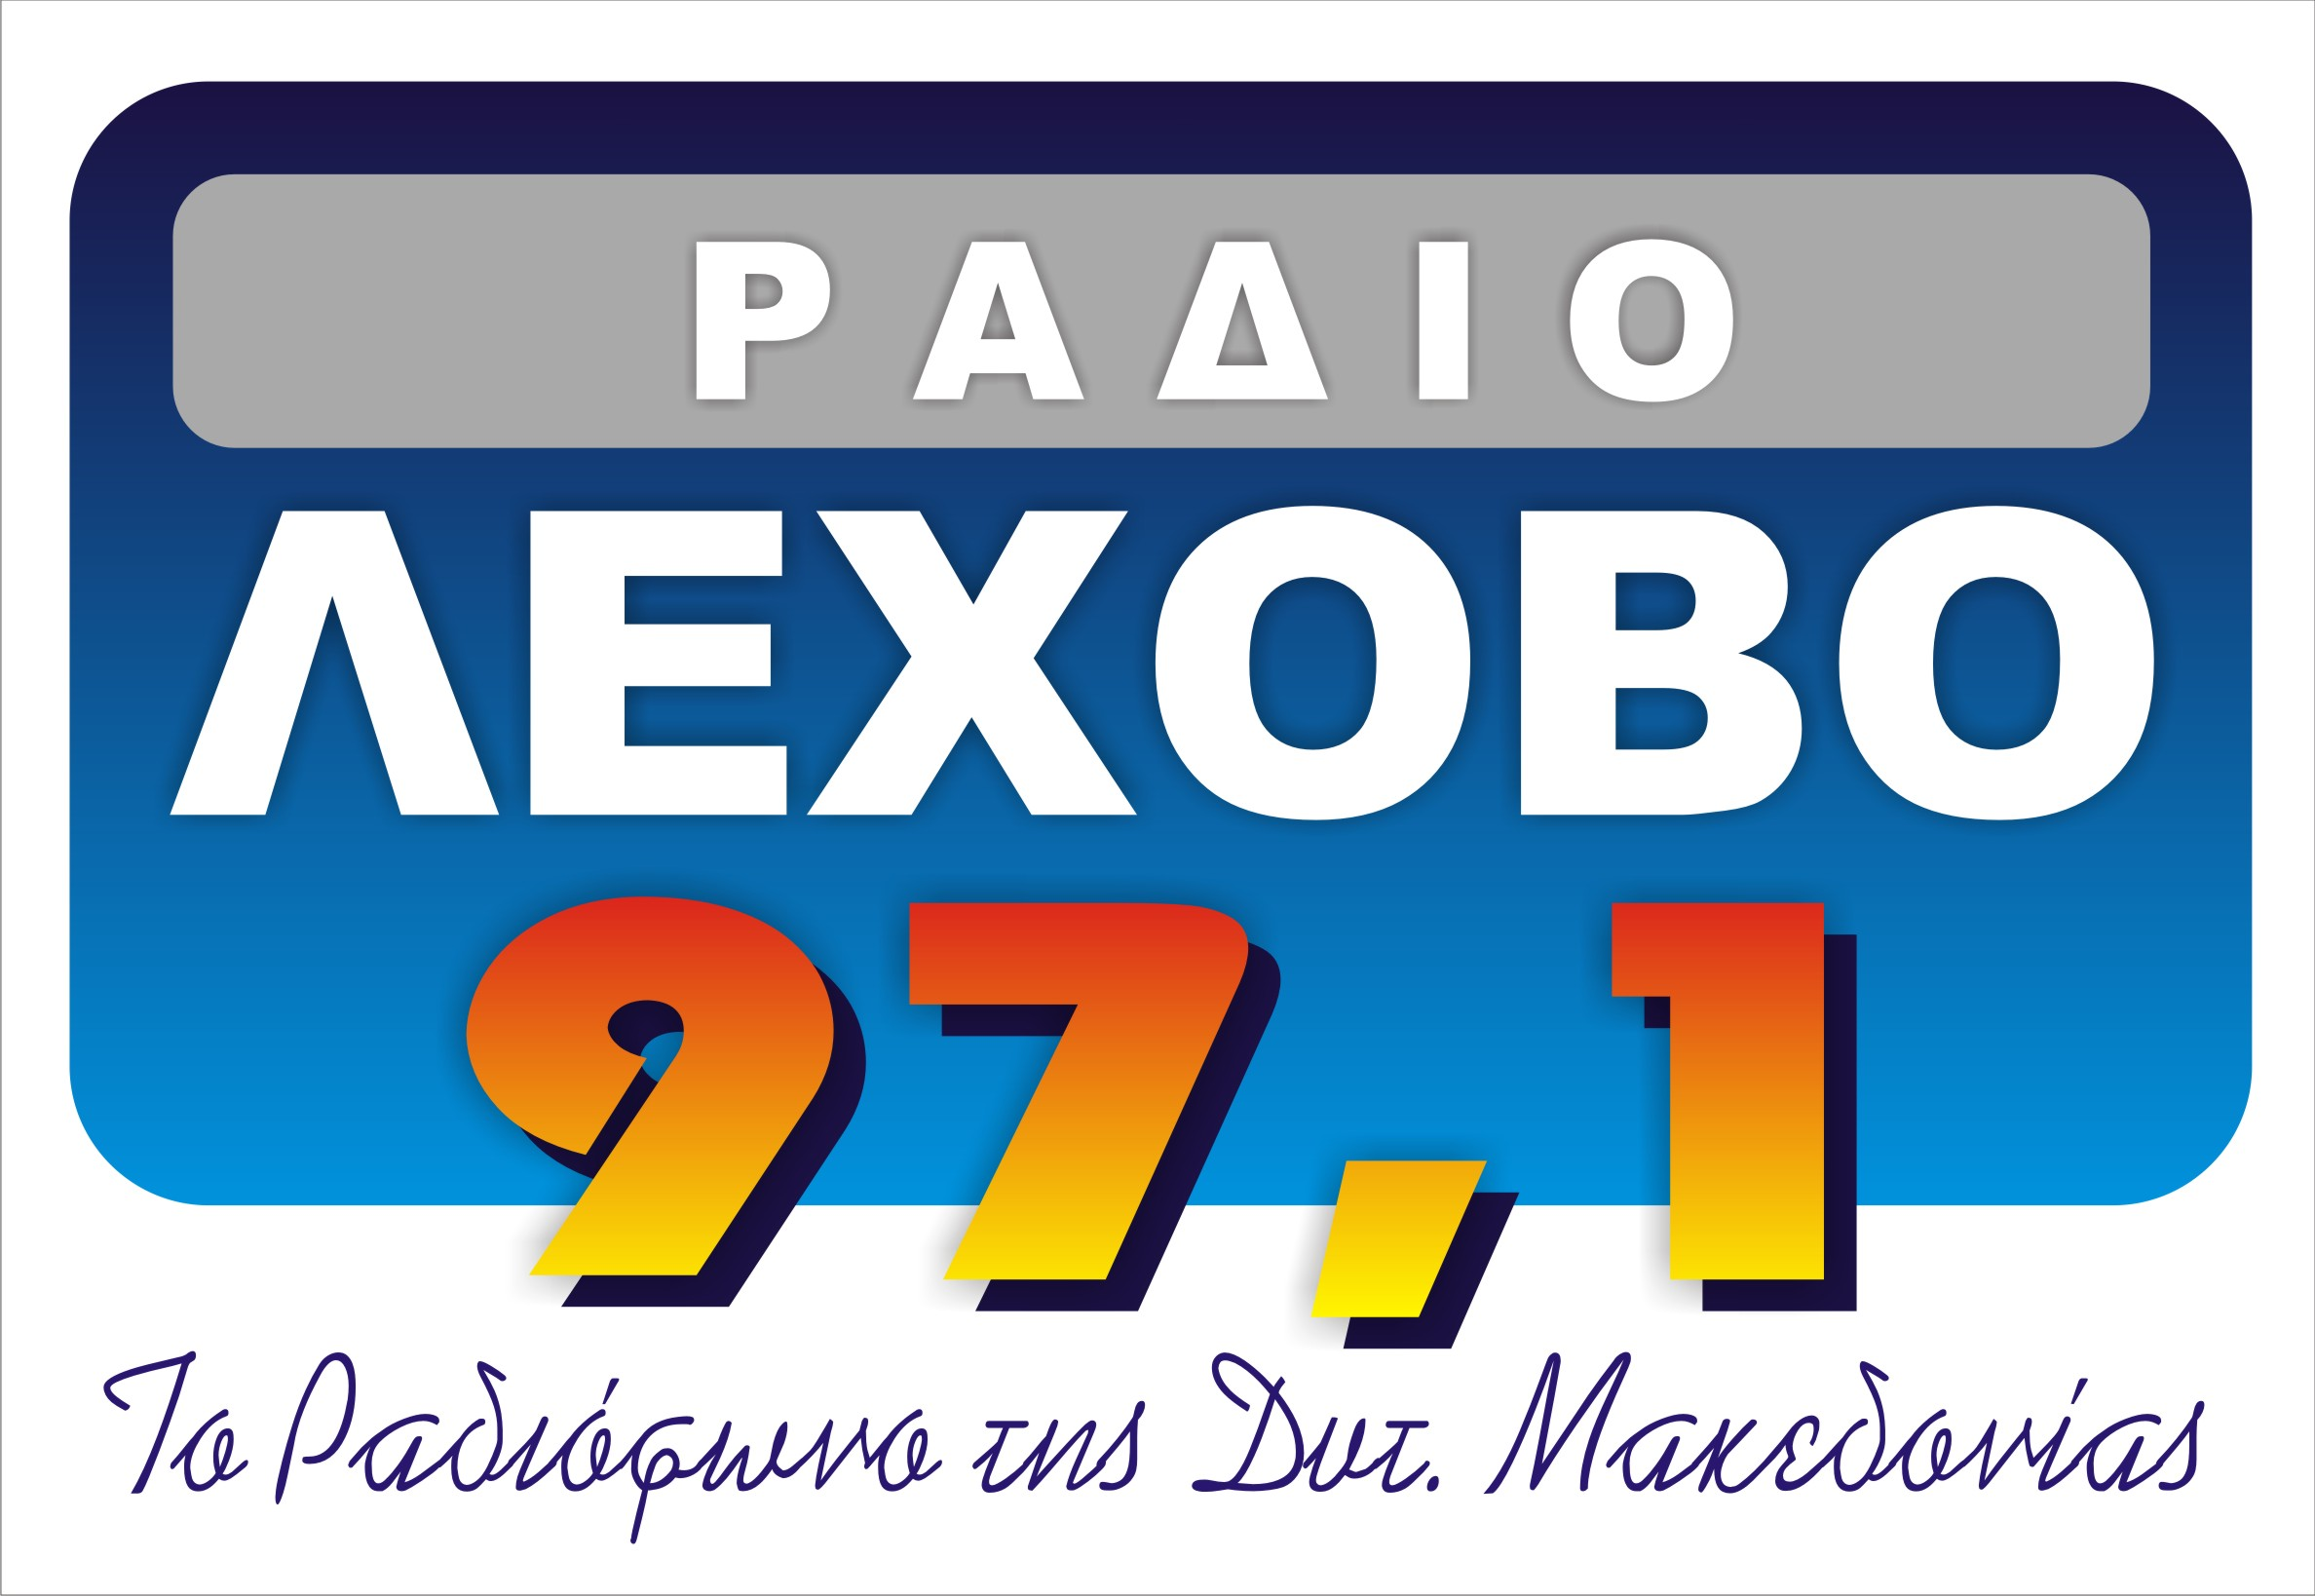 Radio Lehovo 97.1